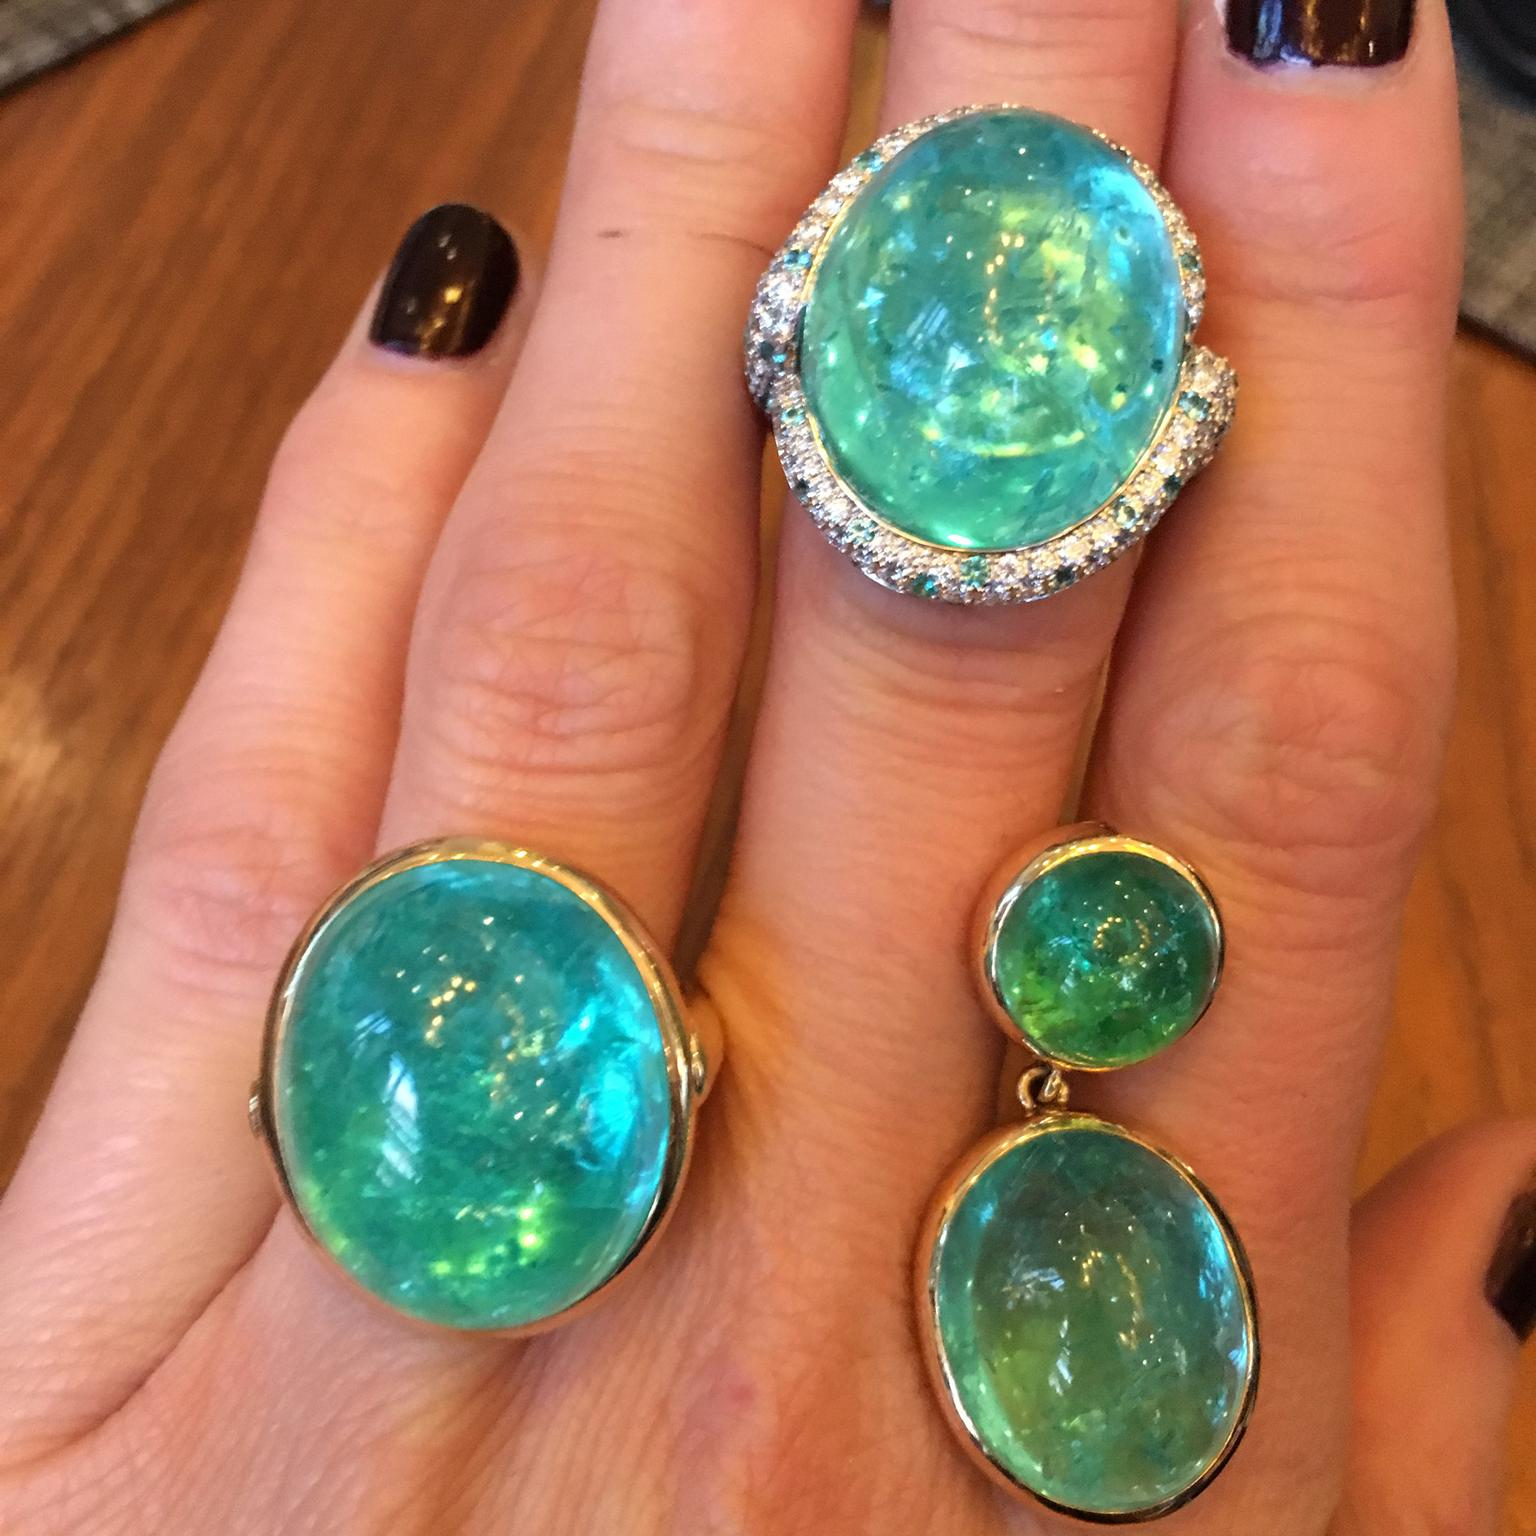 Doris Hangartner Paraiba-like tourmaline and Paraibas